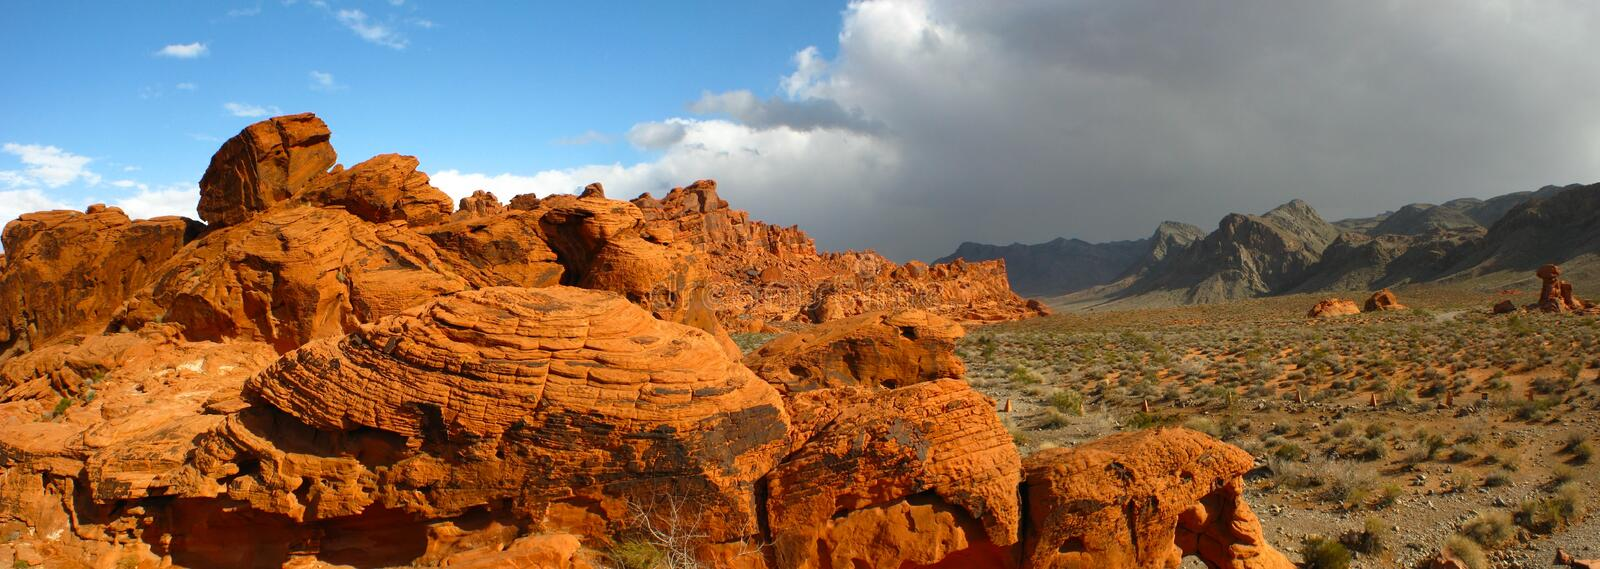 Download Valley of Fire Panorama stock image. Image of pano, perspective - 17998185